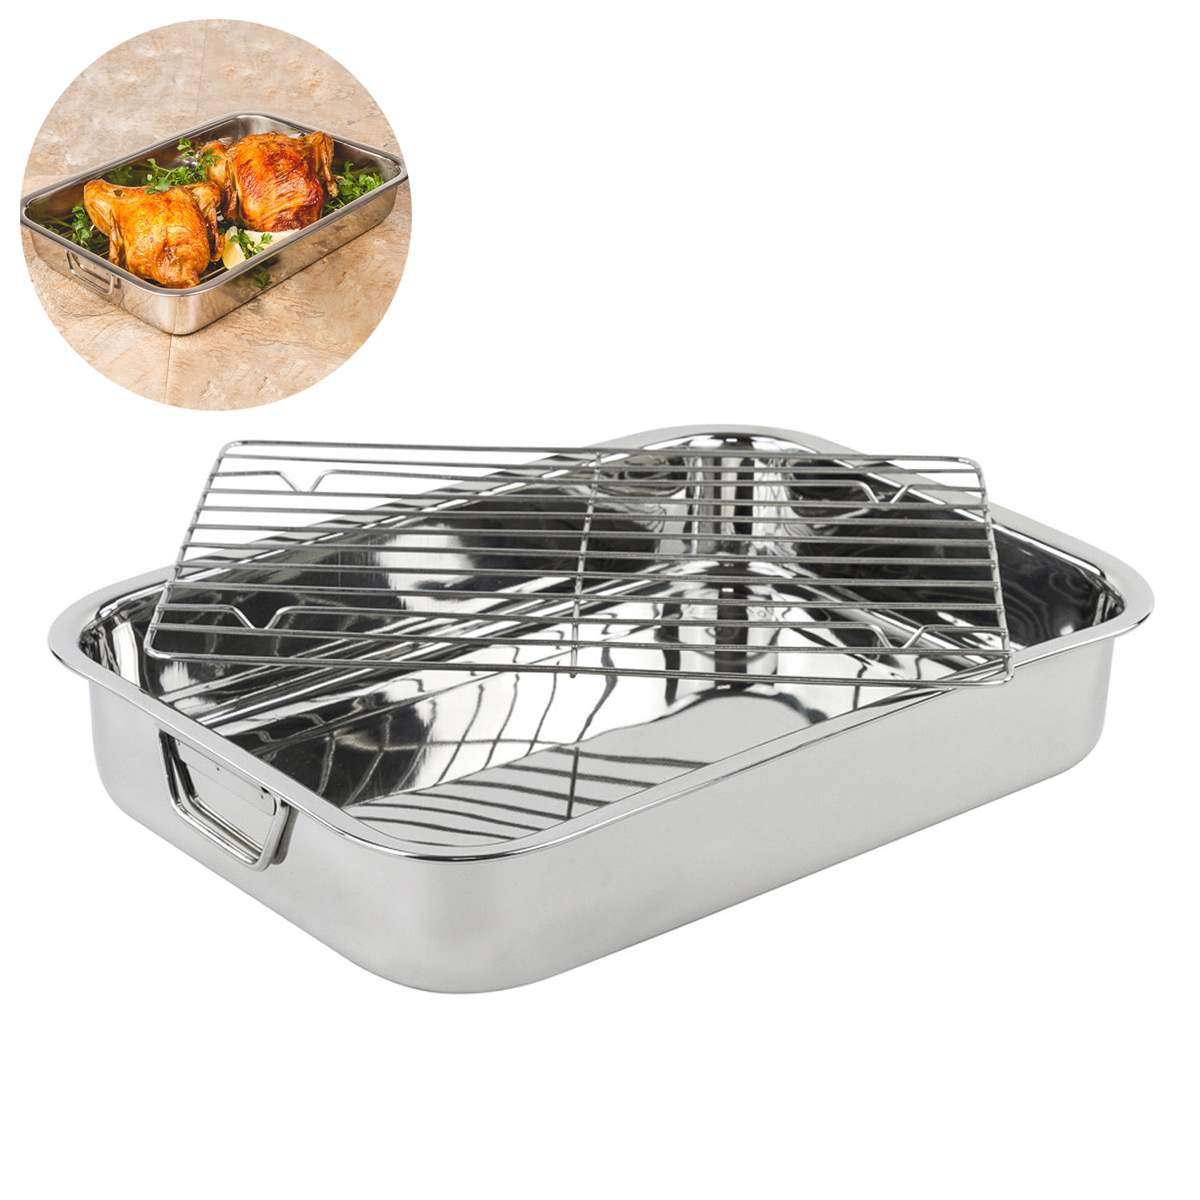 Large Stainless Steel Roasting Lasagna Pan Meat Roaster with Rack Baking Pan Dishes Kitchen Cooking Tools BBQ Accessories Set|  - title=